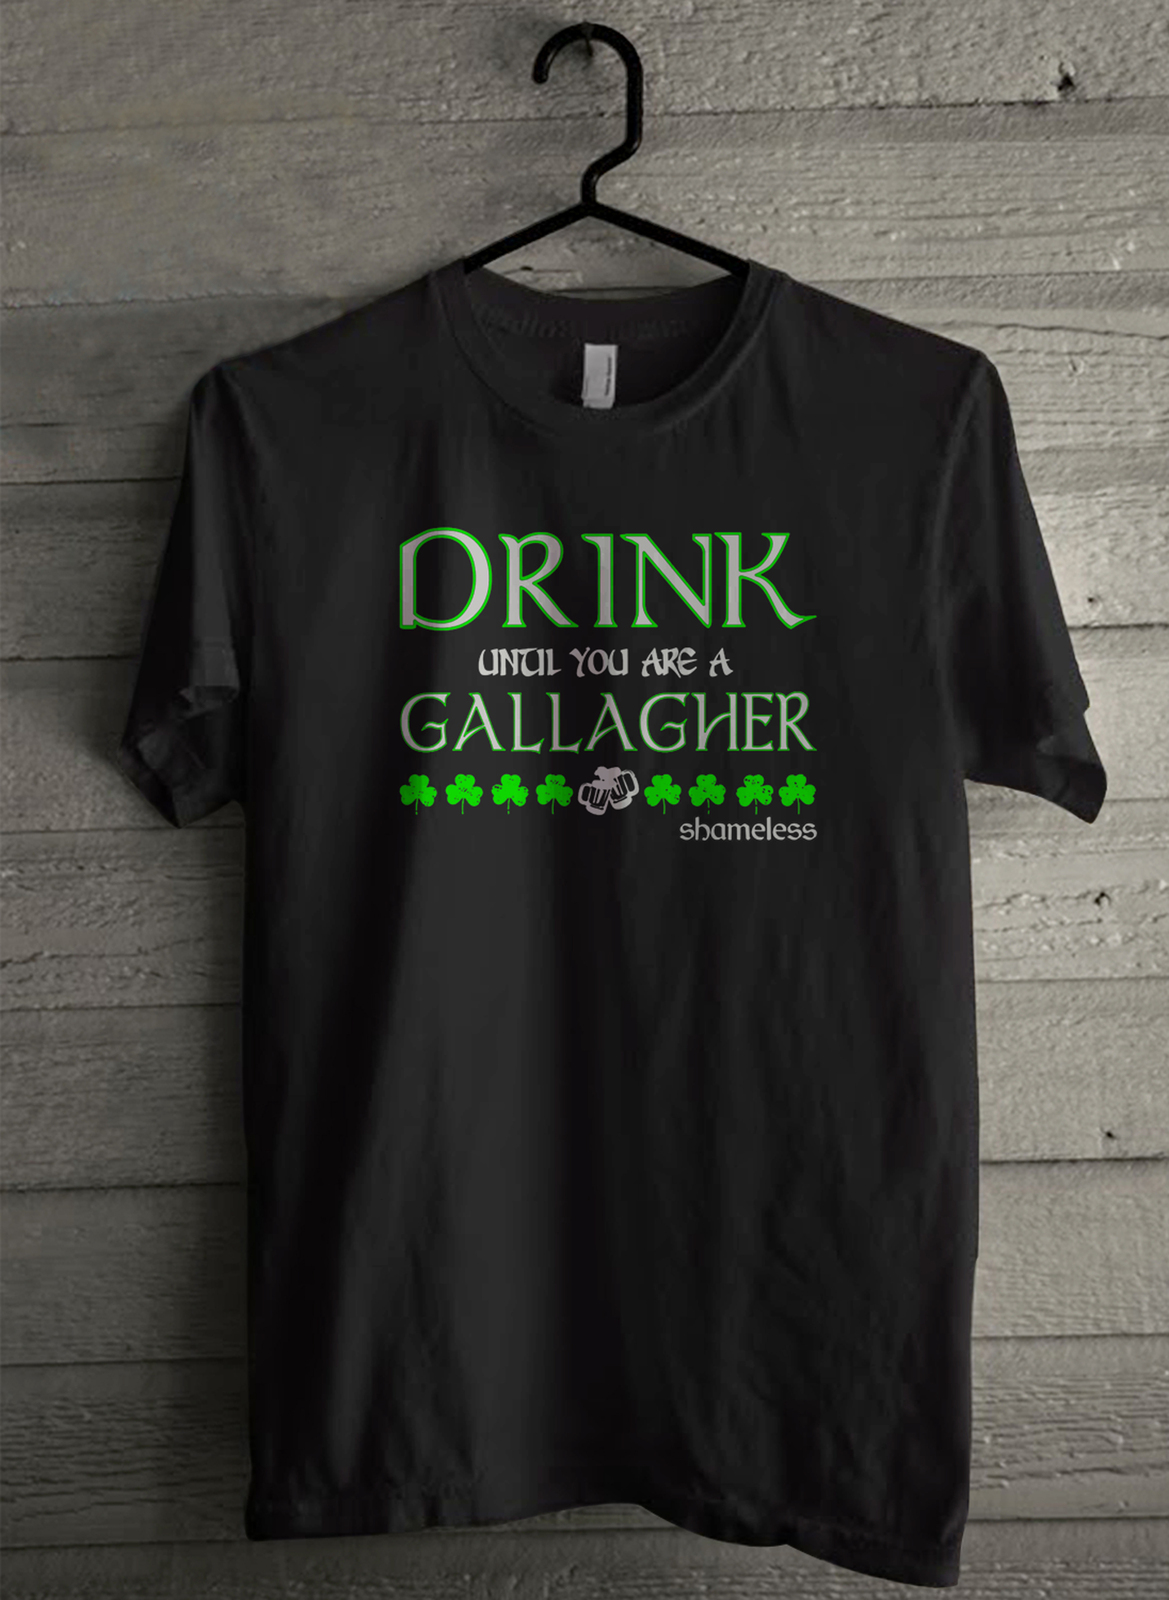 Drink until you are a gallagher shameless